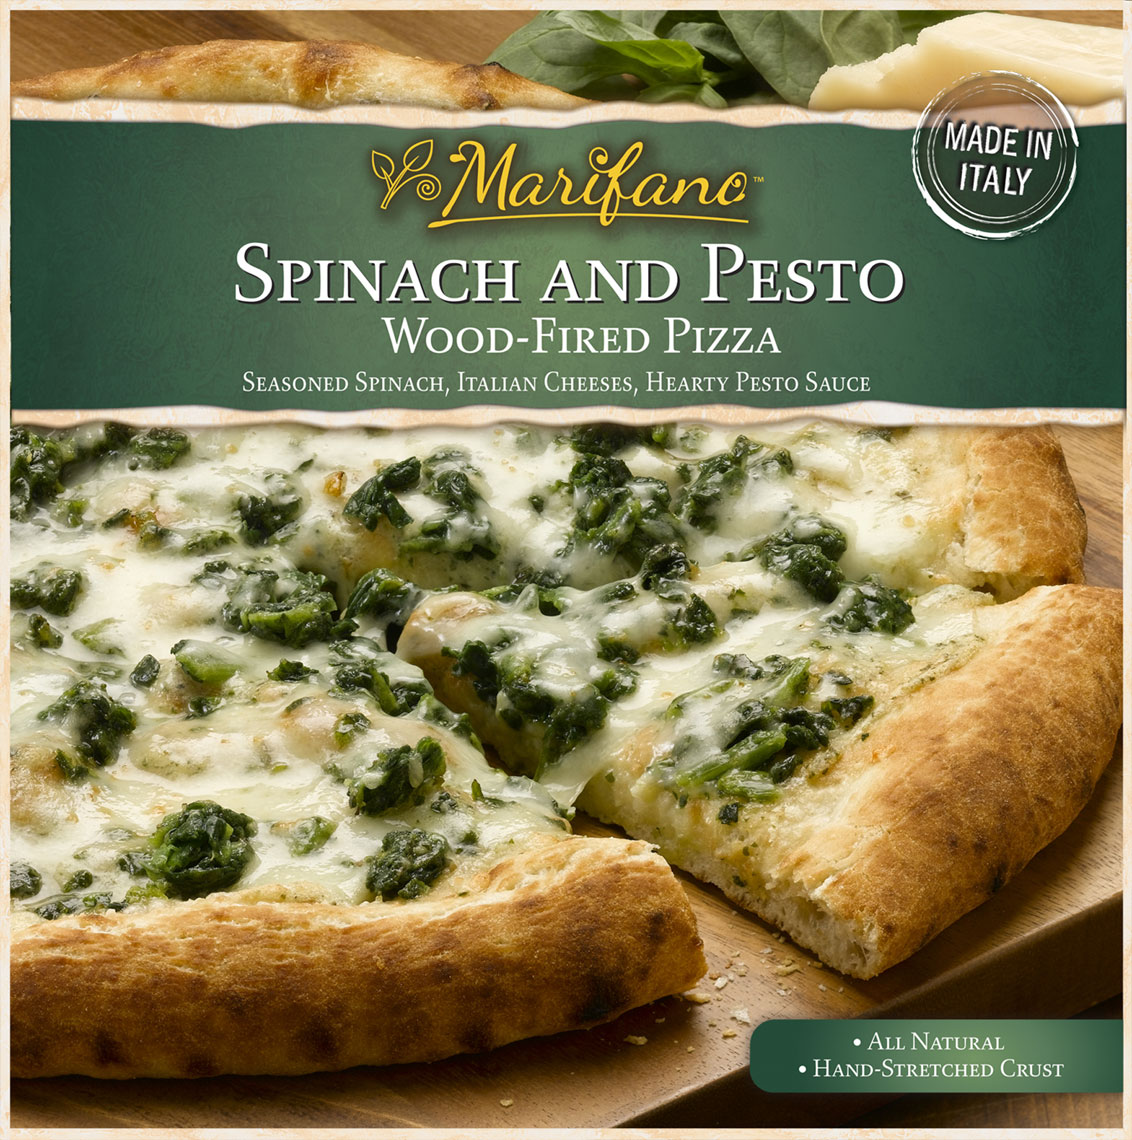 Spinach Pizza Packaging Photo